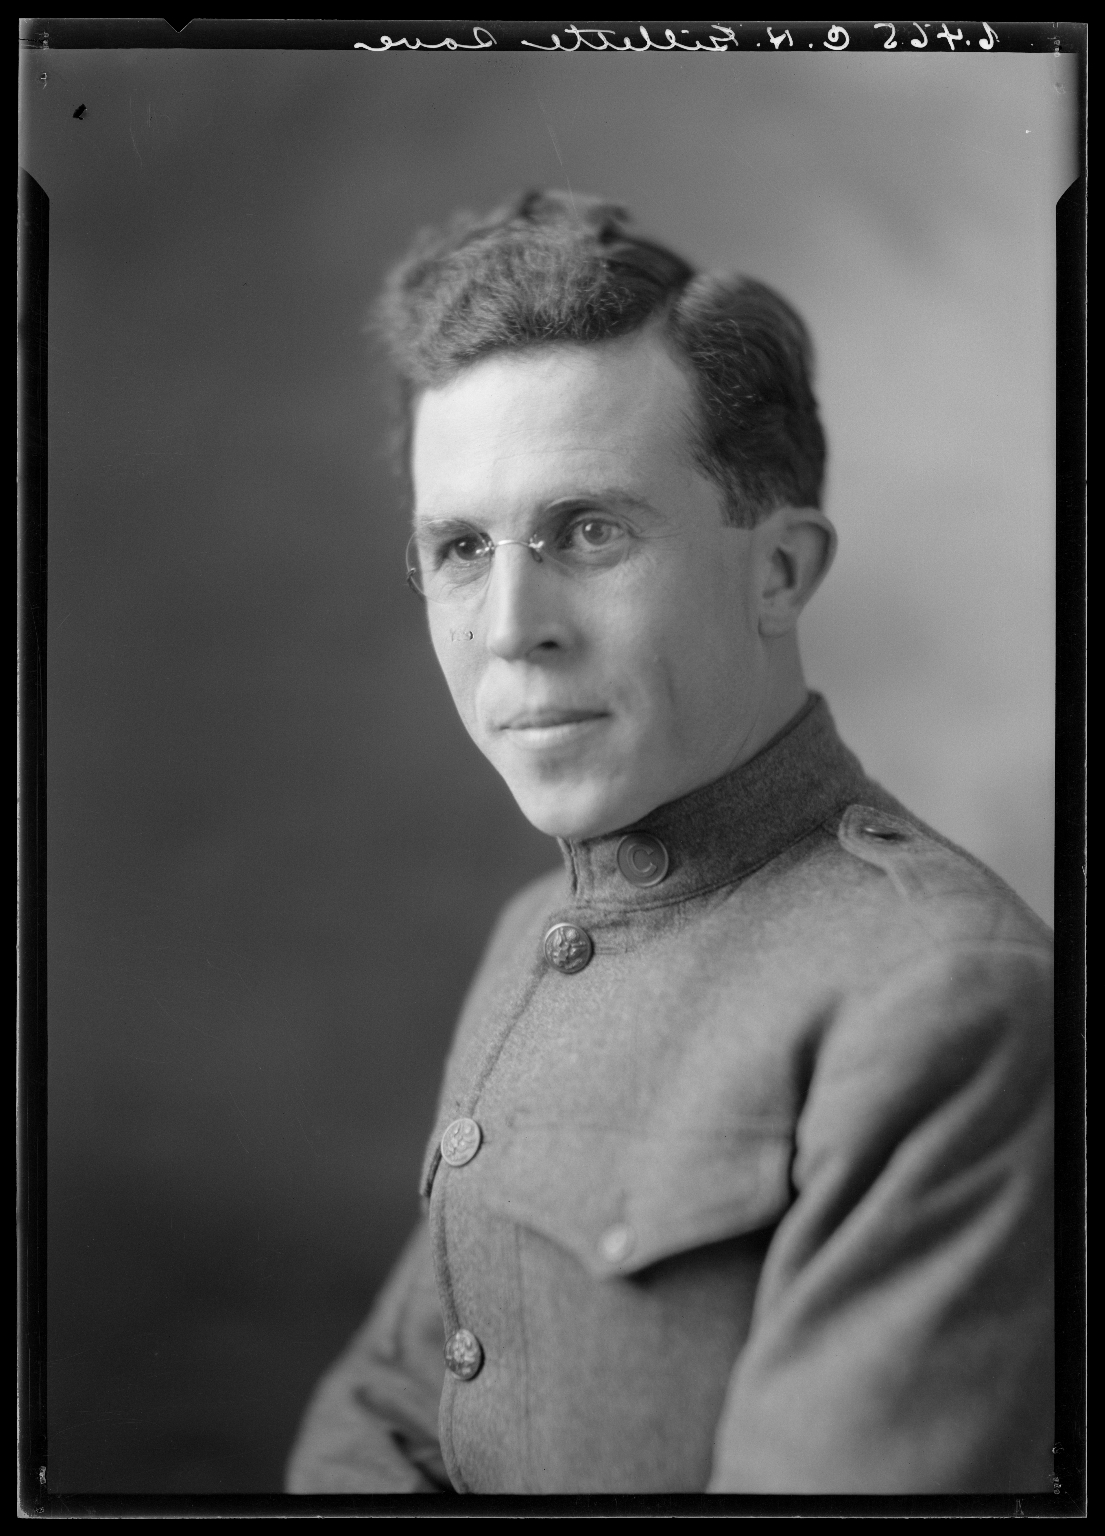 Portraits of C. H. Gillette